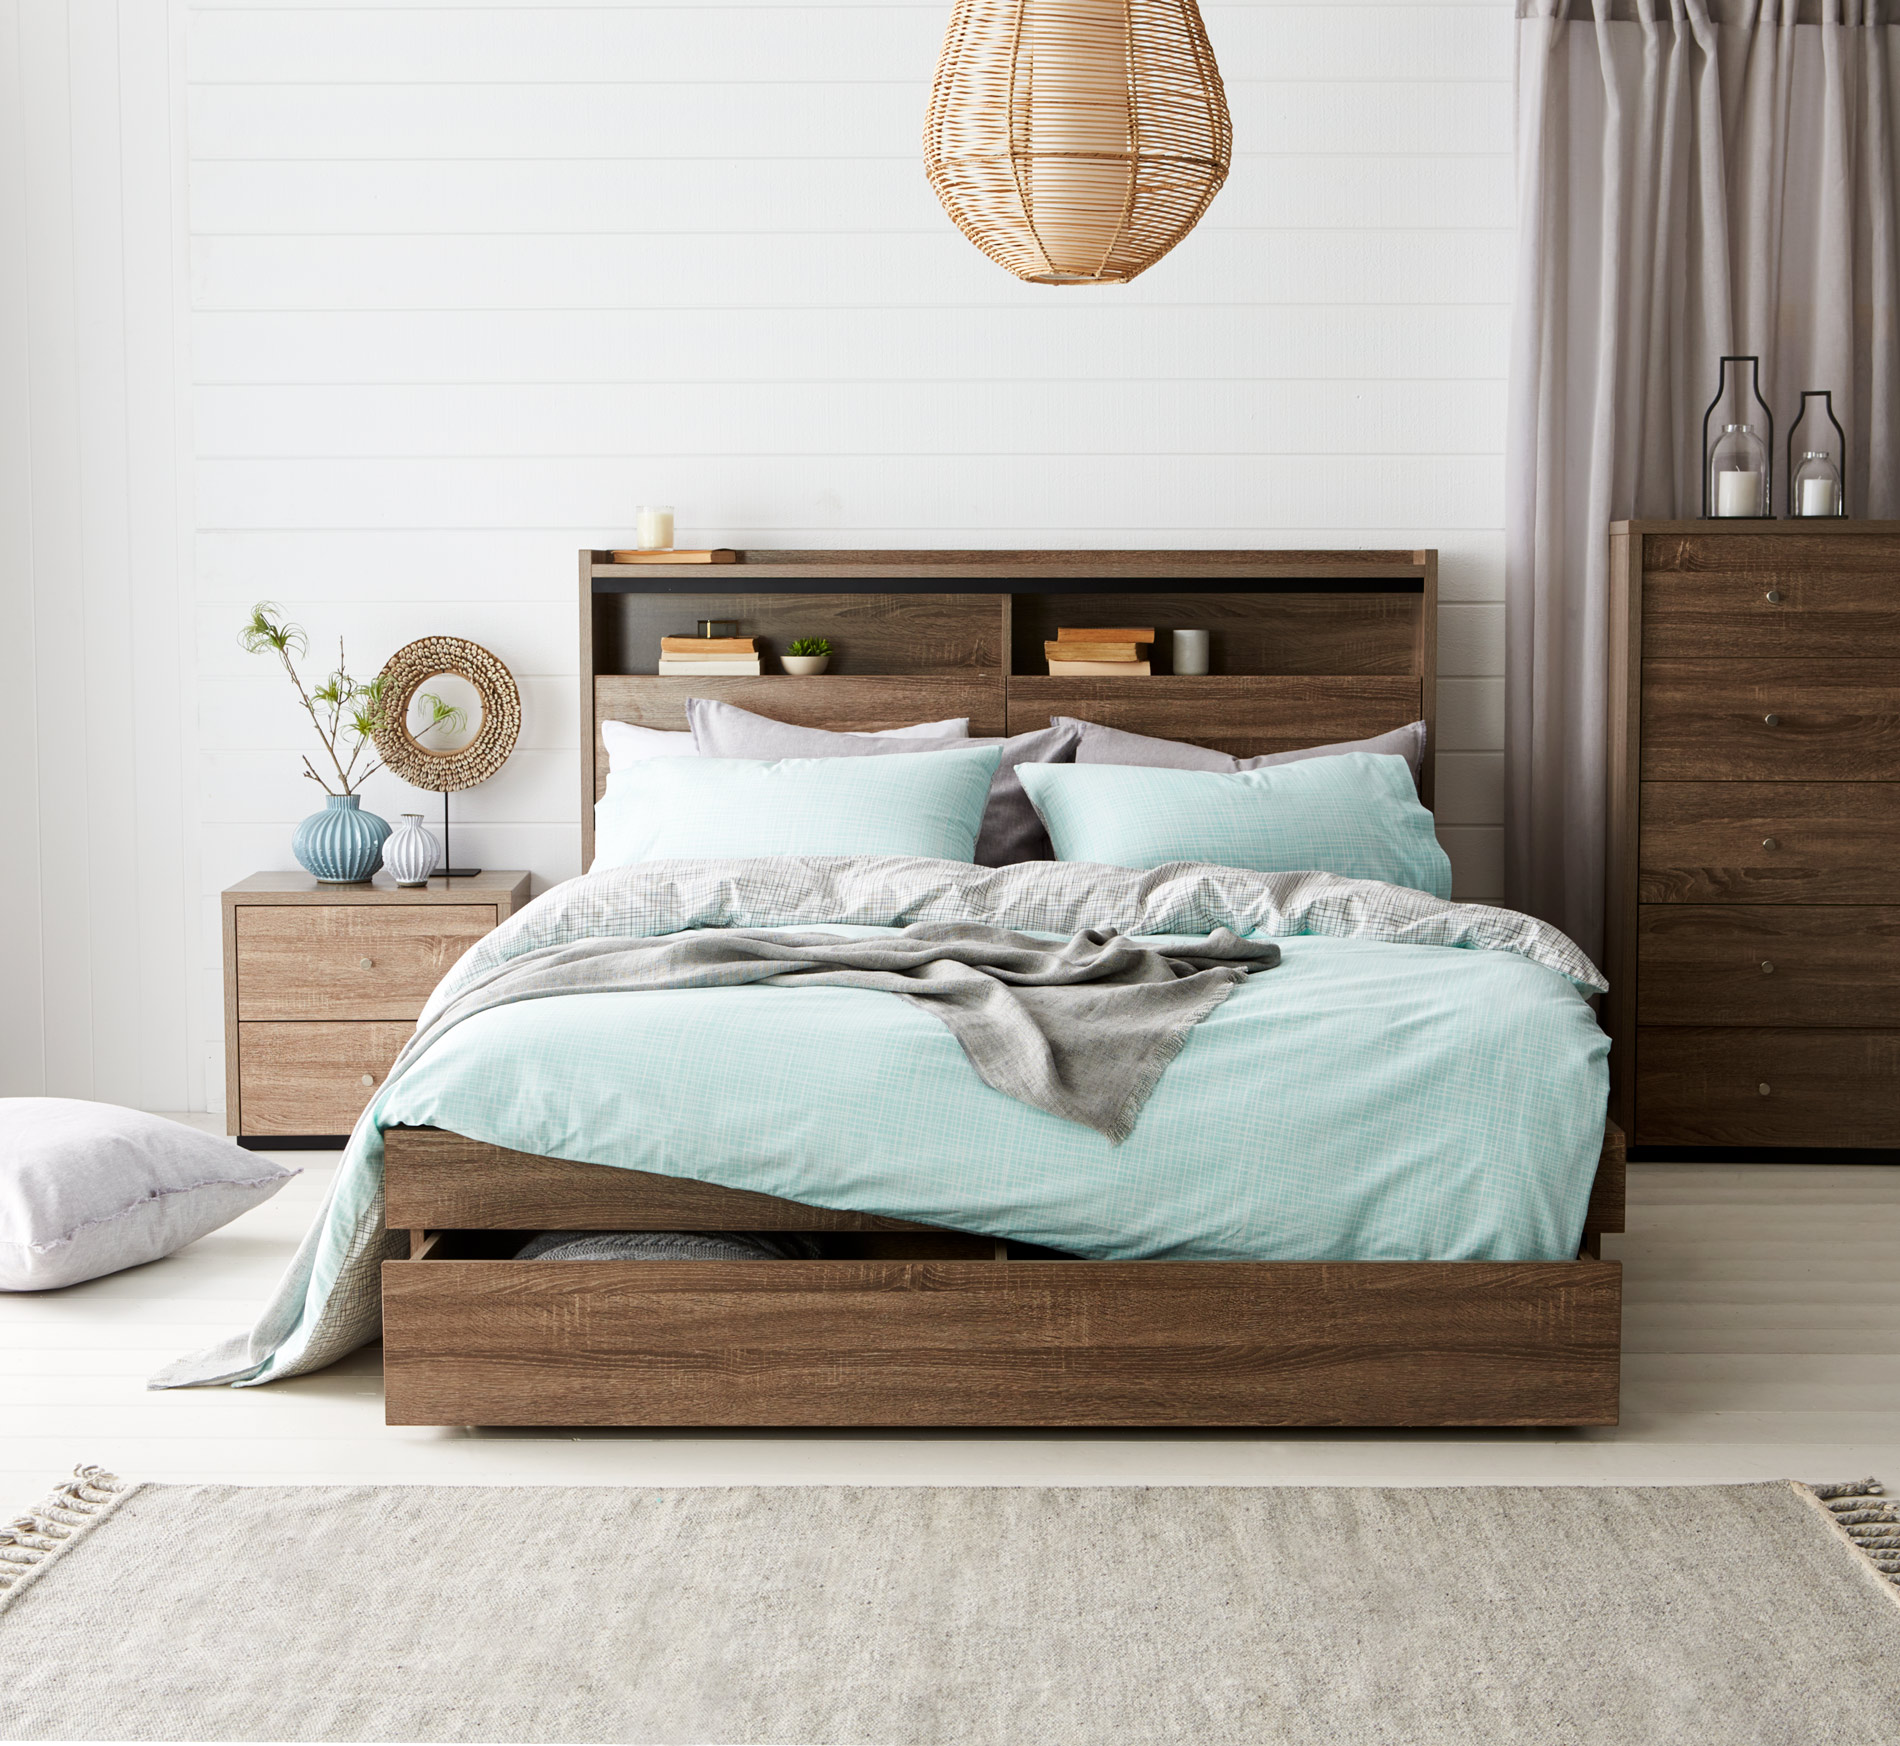 armidale bookend bed frame w bedhead